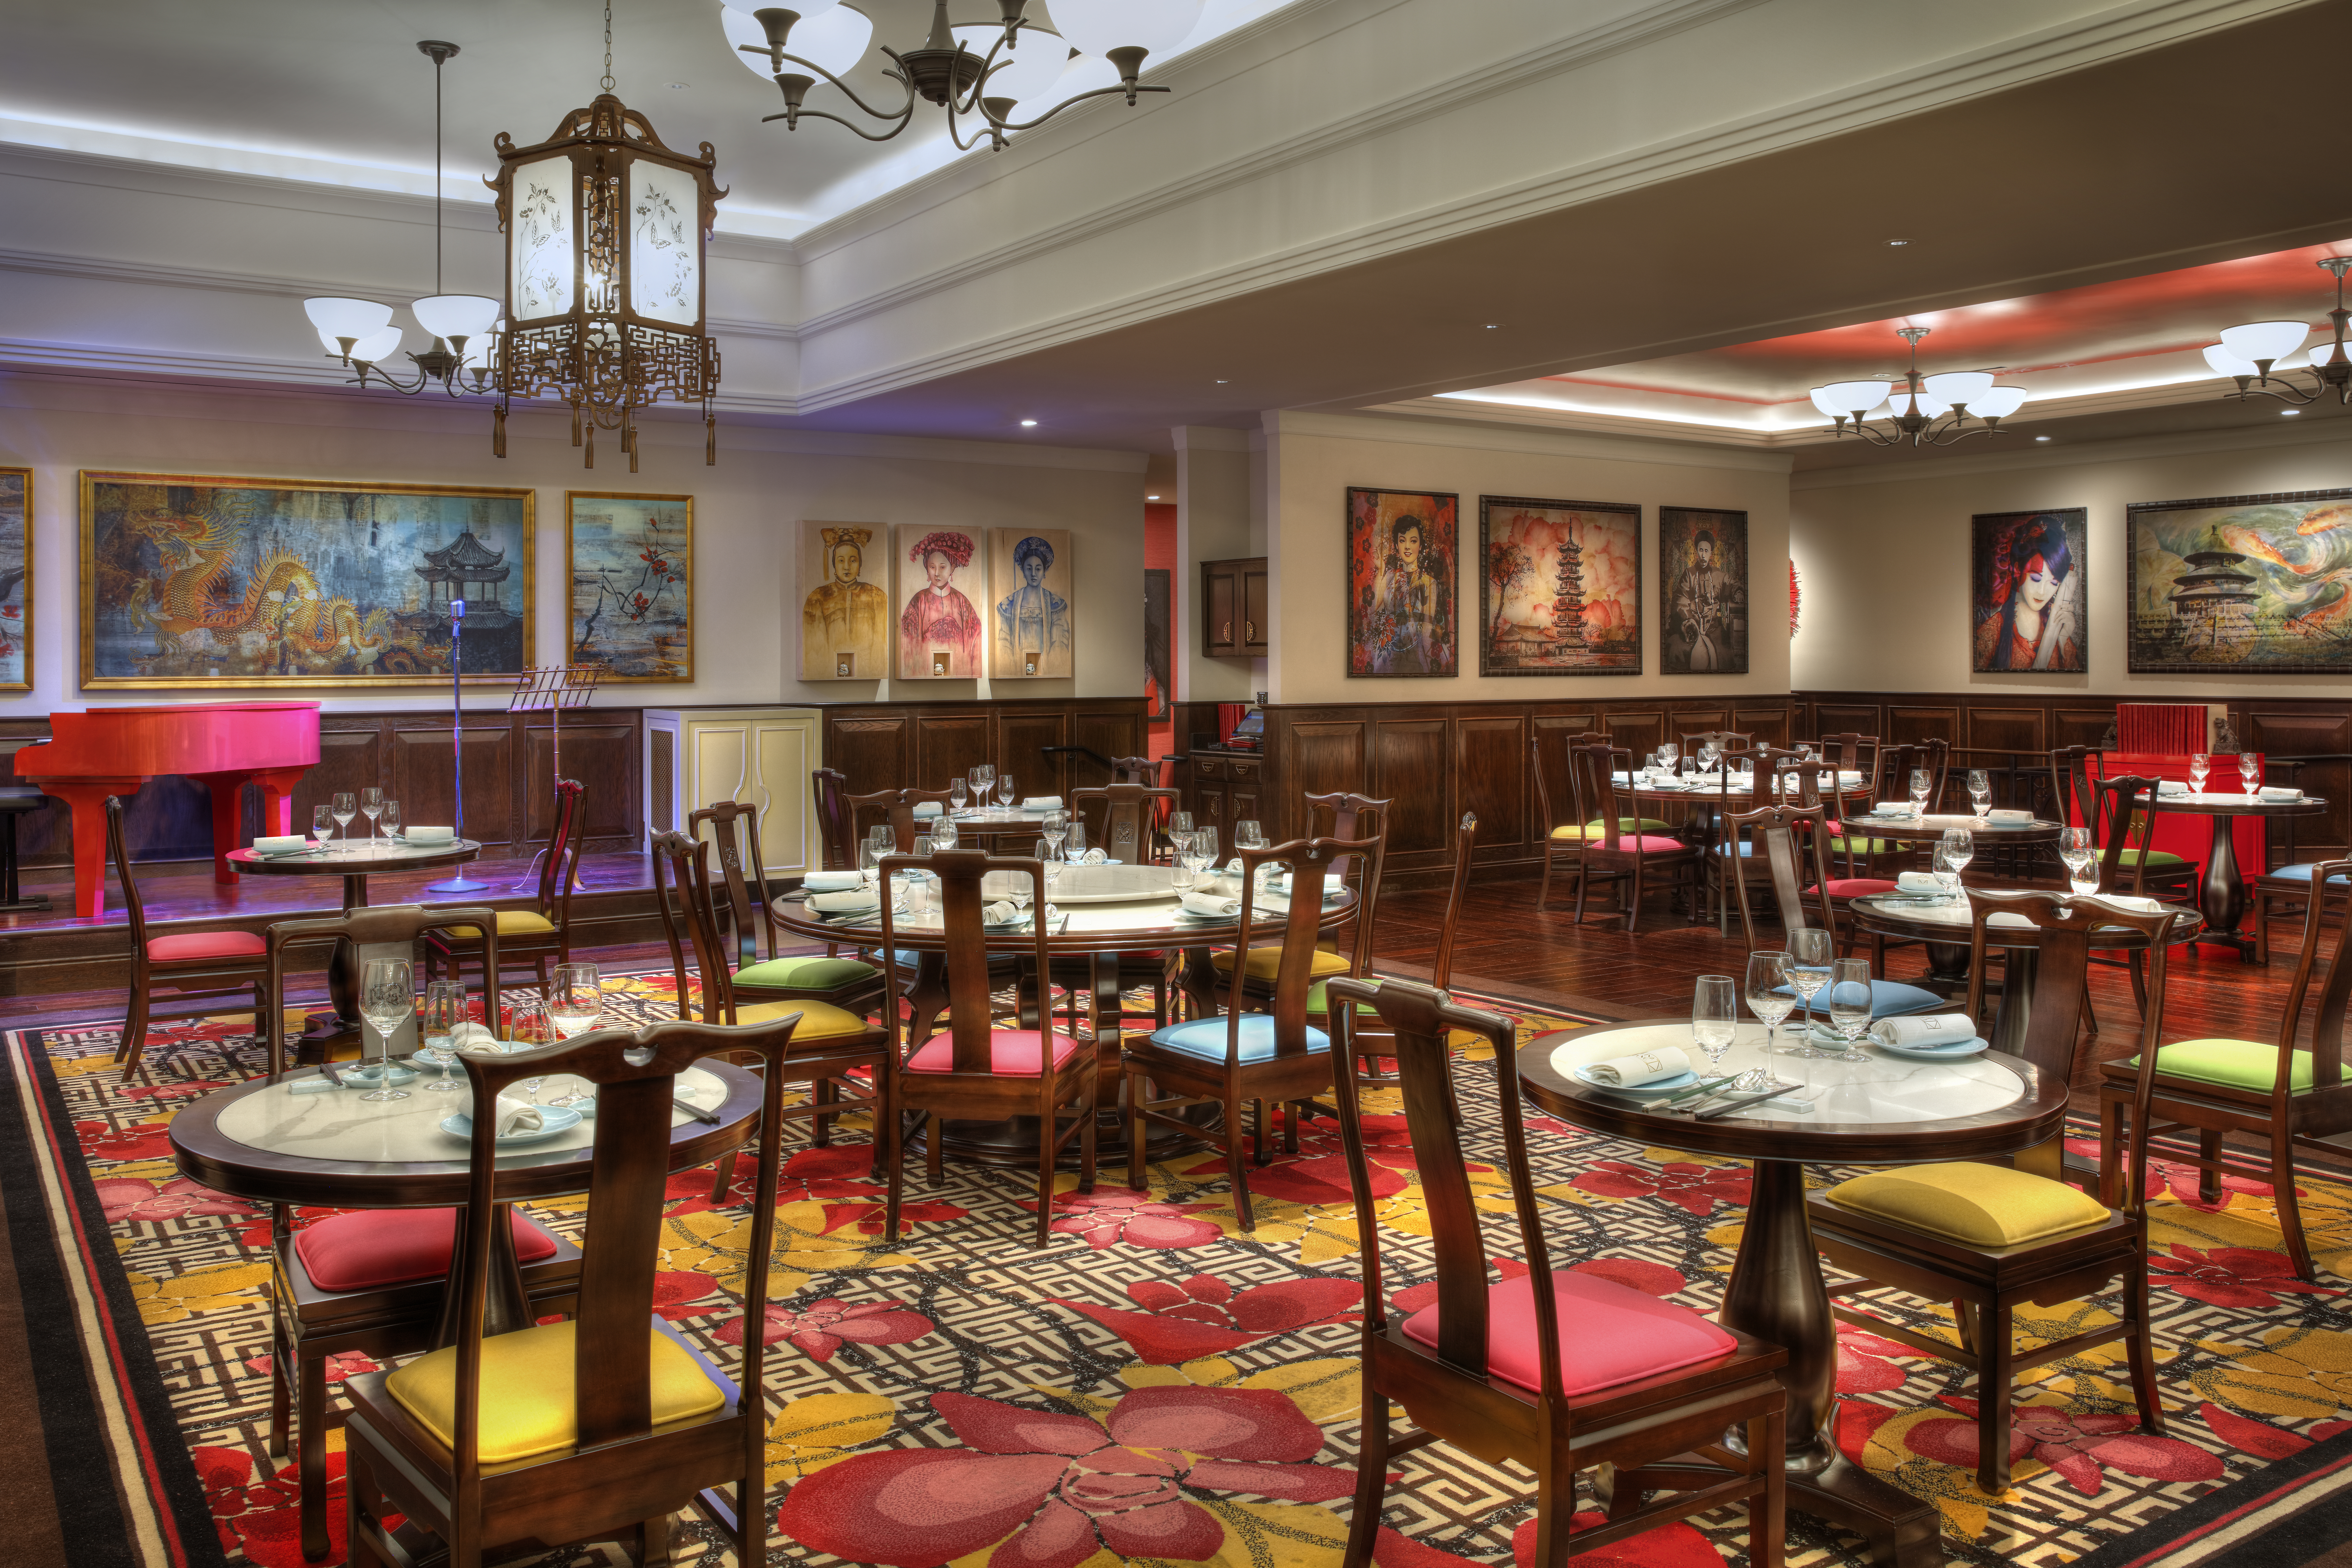 The interior of China Tang, scheduled to close in February at the MGM Grand.